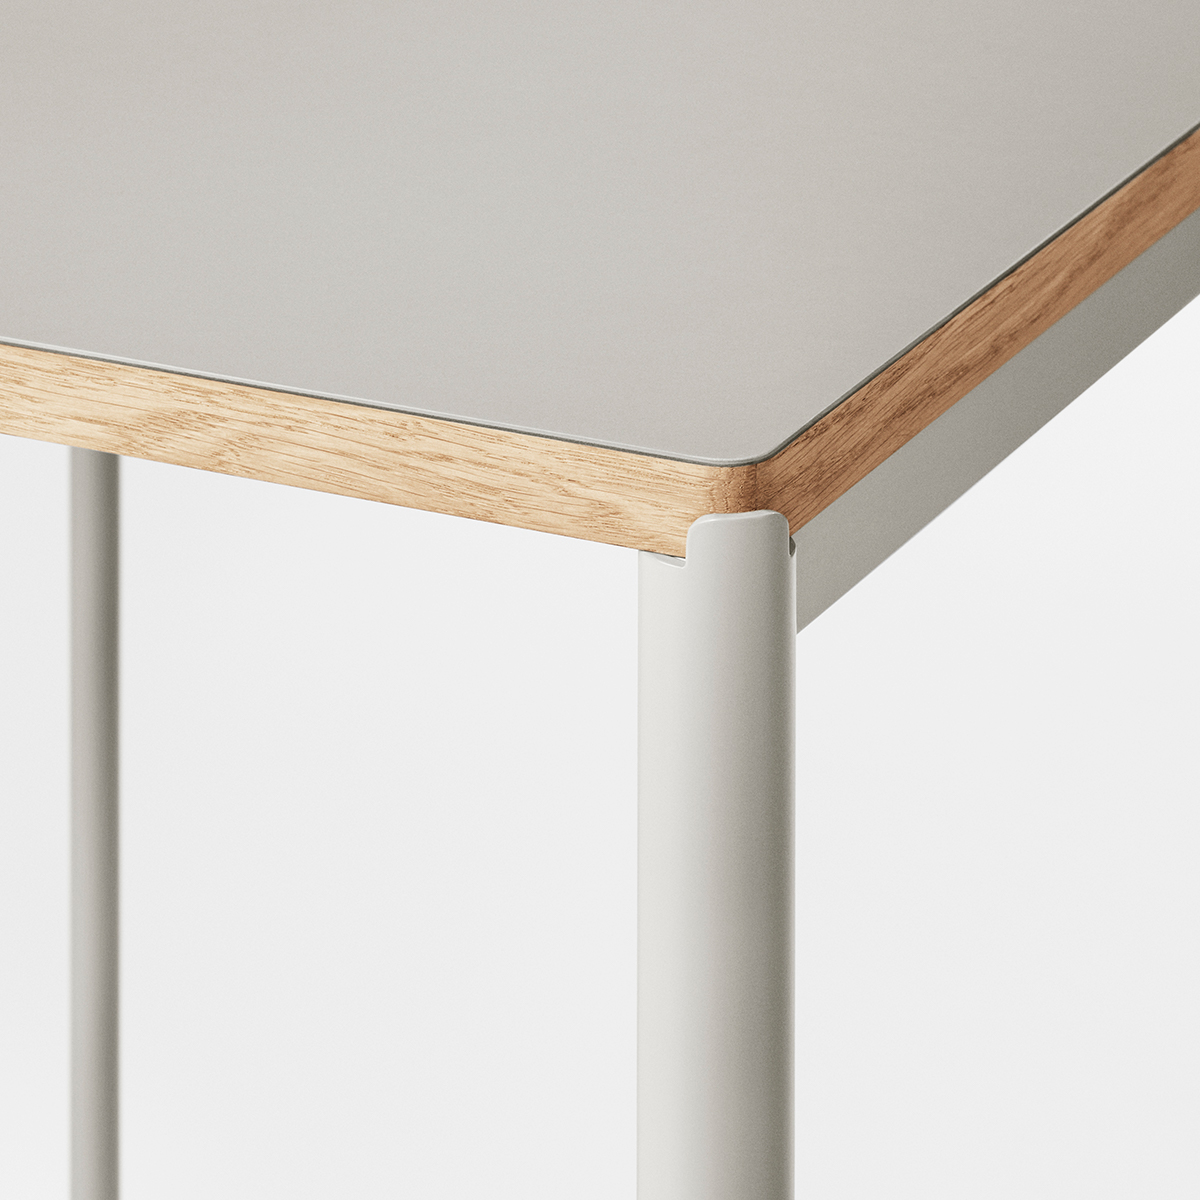 Corner detail of Mies High Table in grey